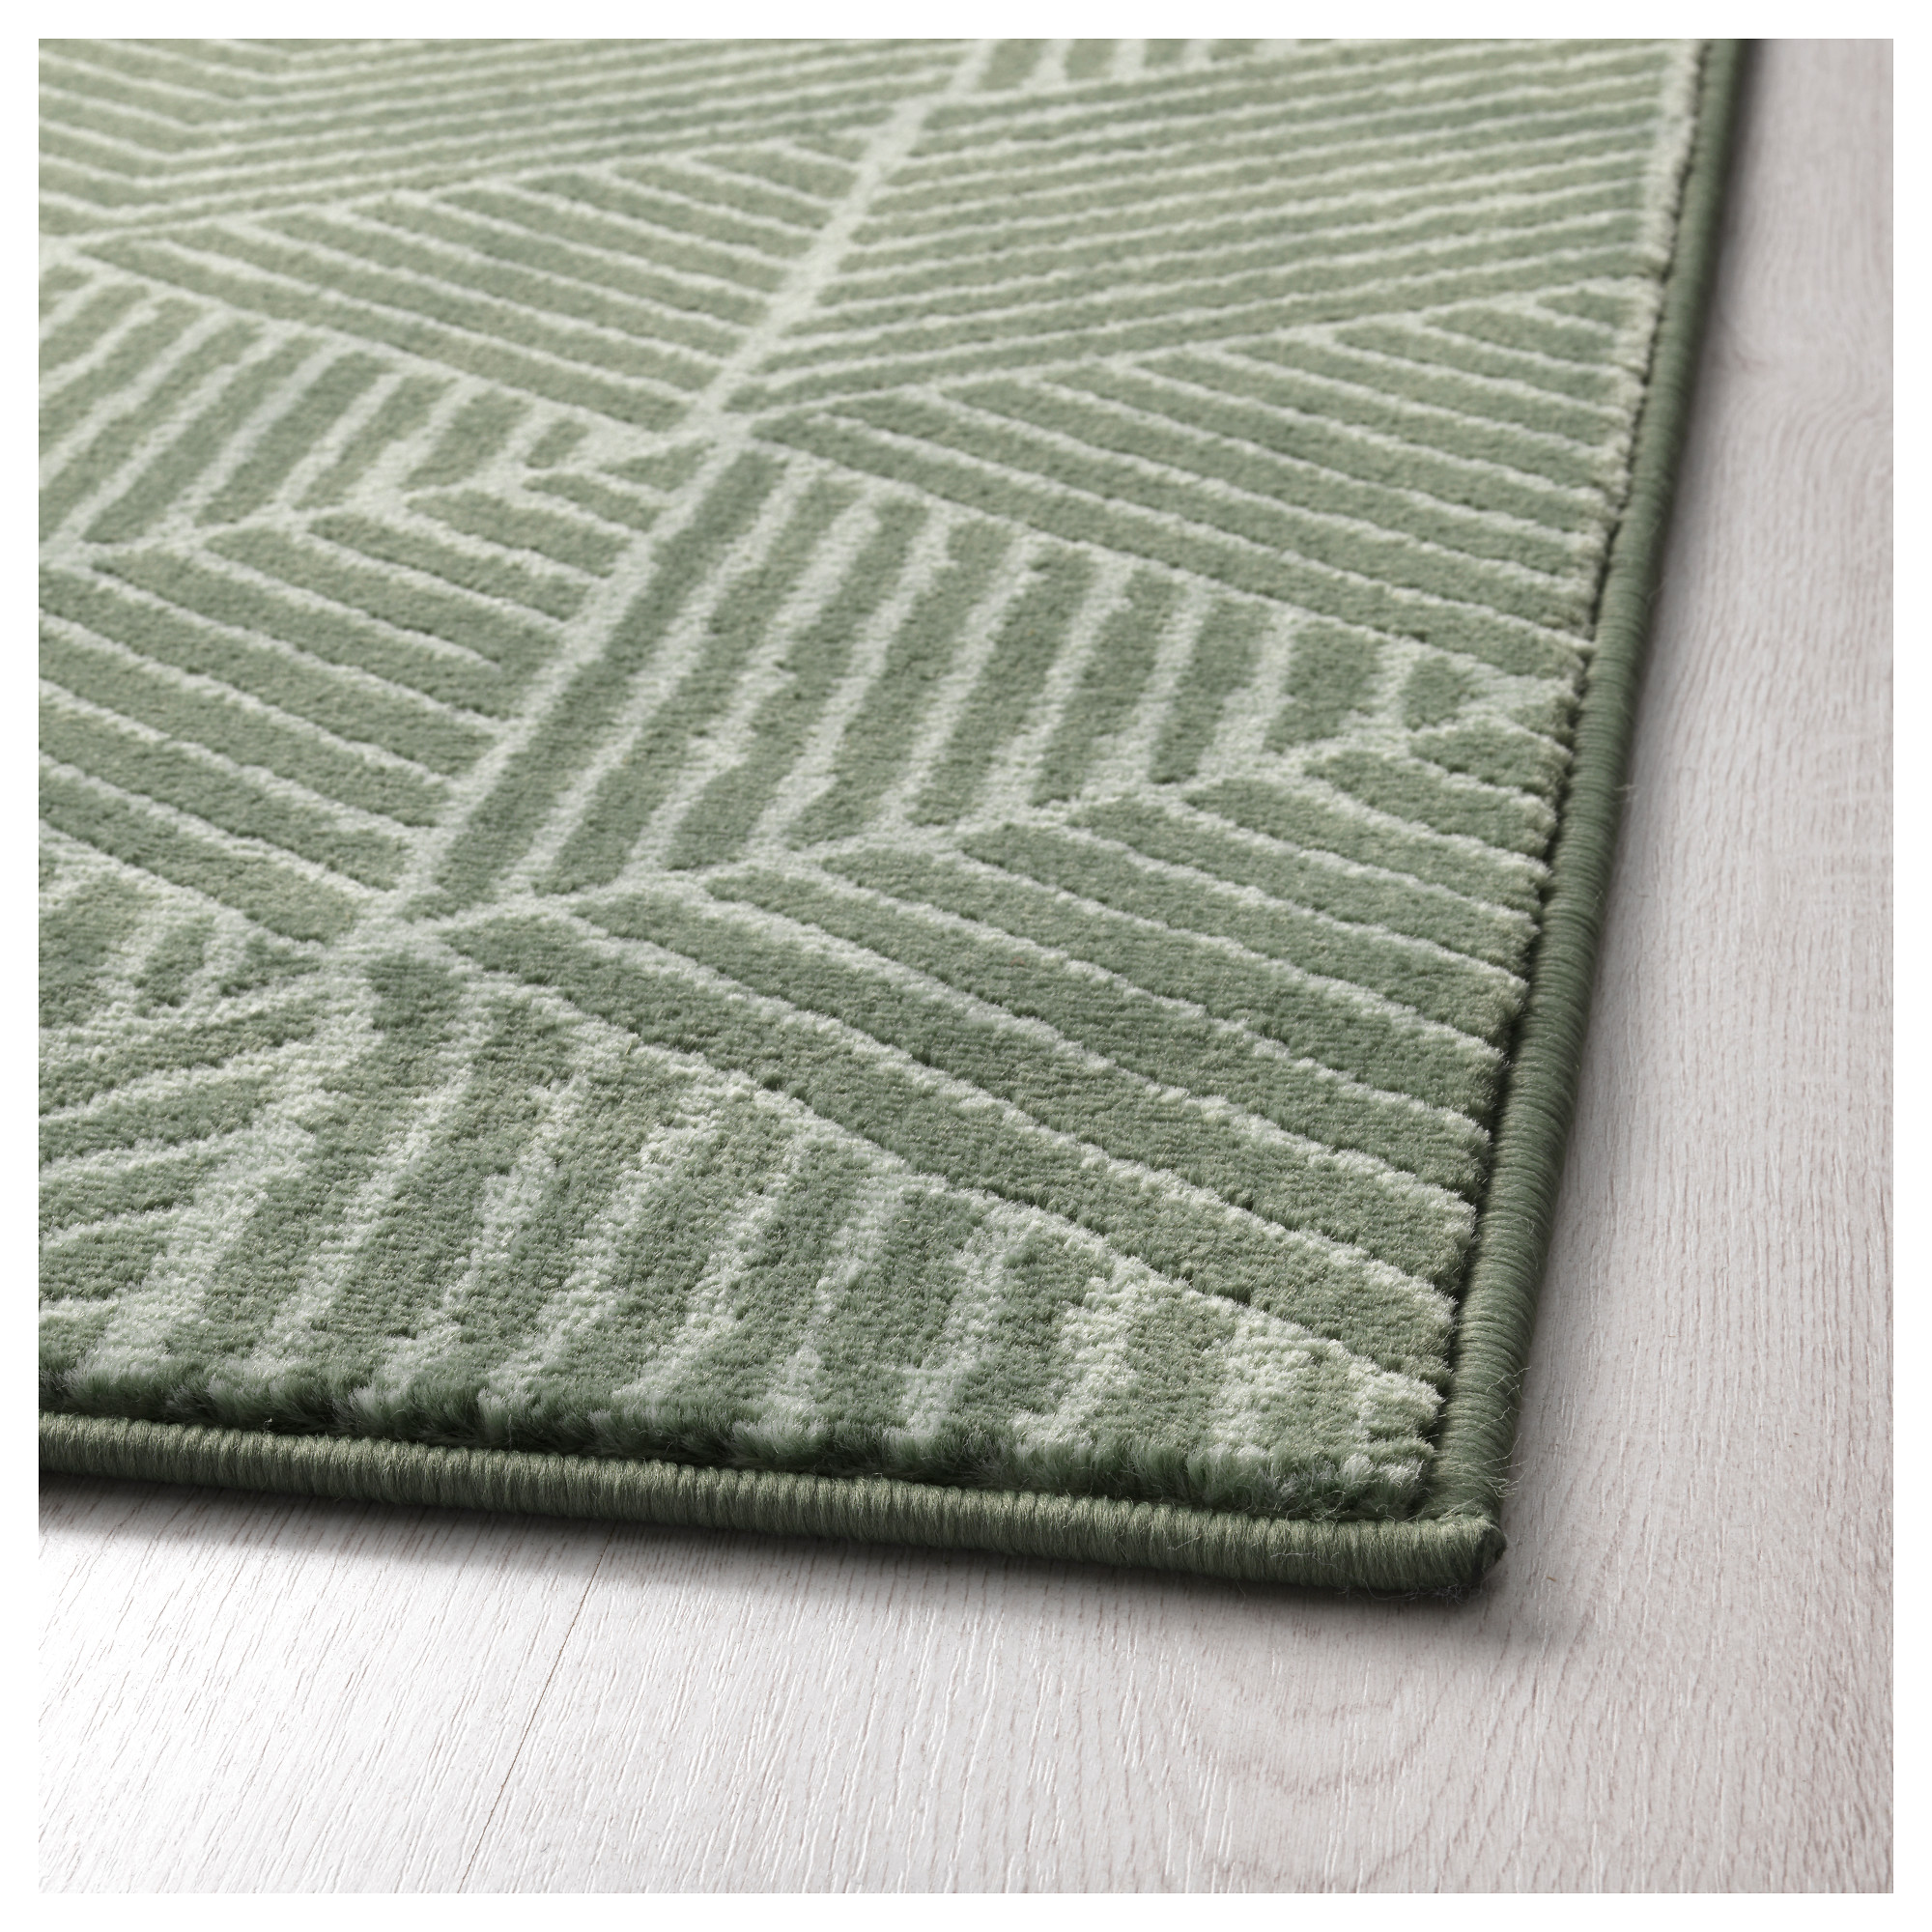 Poco Teppich Florida Stenlille Rug Low Pile Green Ikea Nursery Rugs Ikea Bedroom